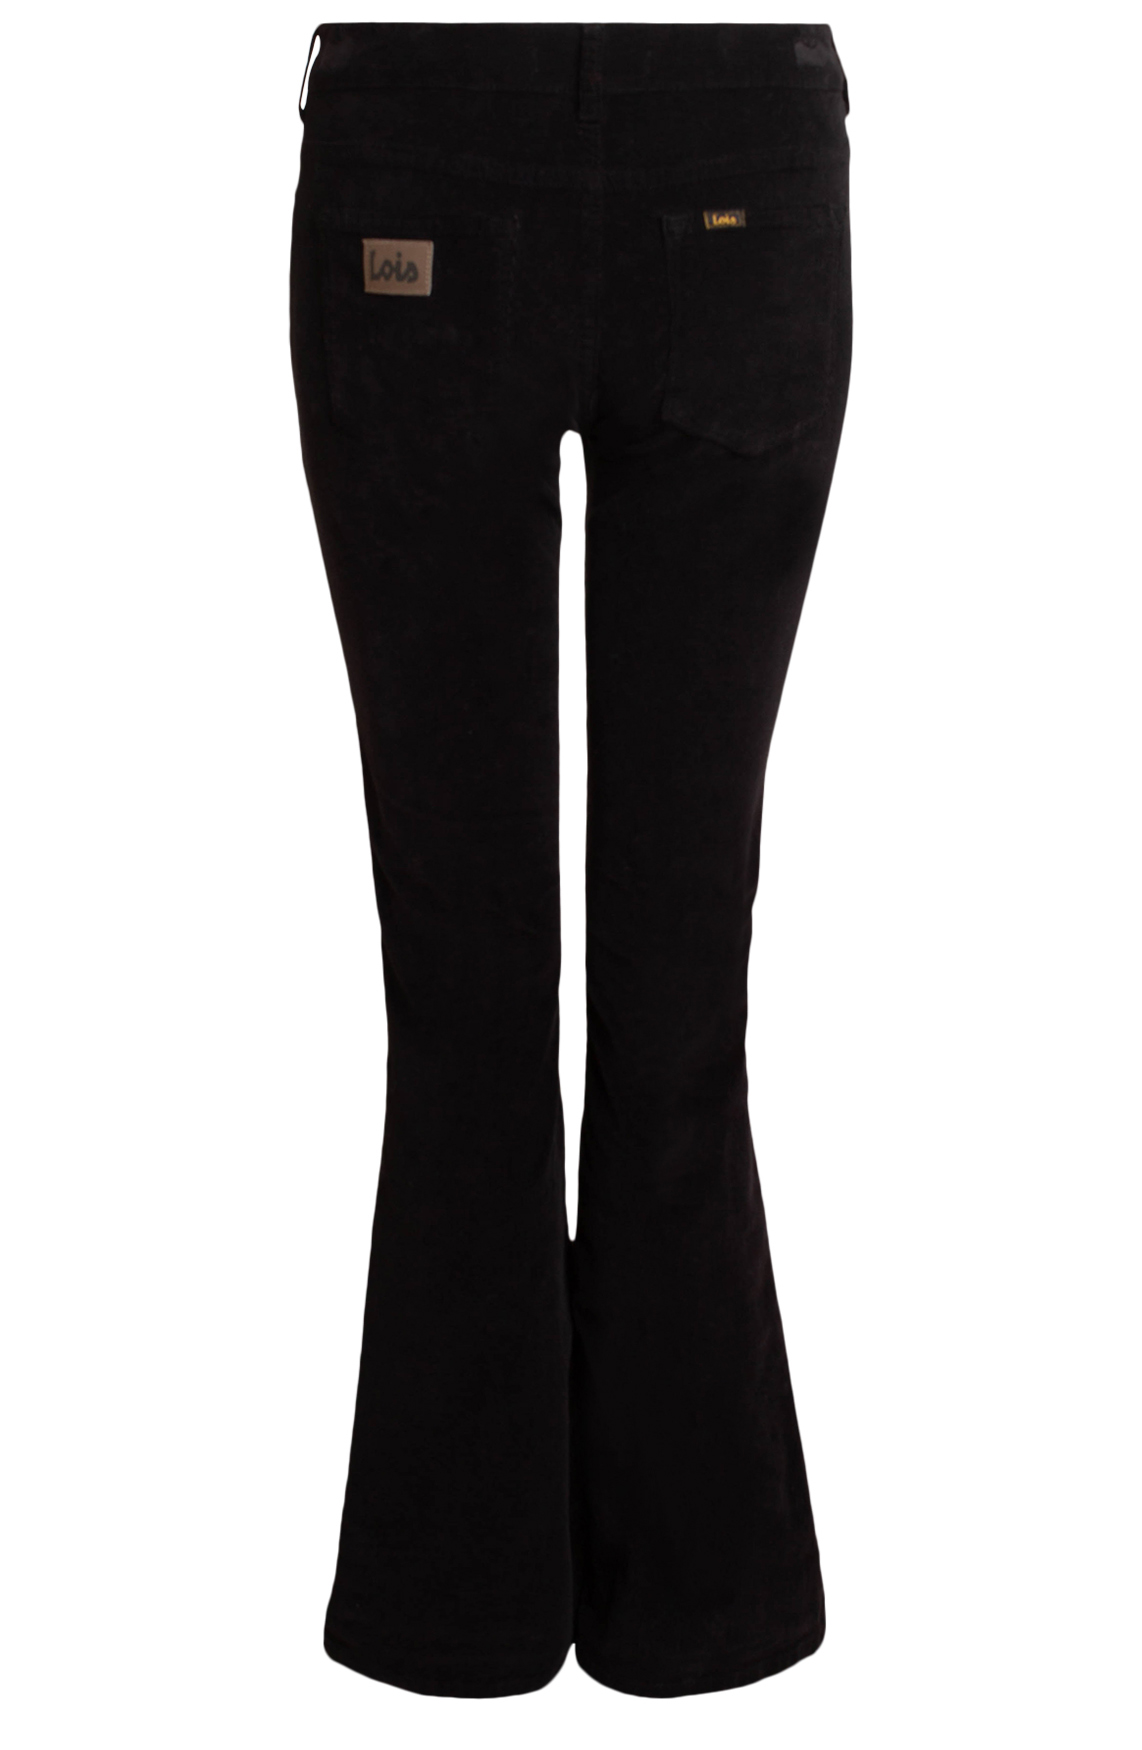 Lois Dames Micro Beat flared jeans L34 zwart